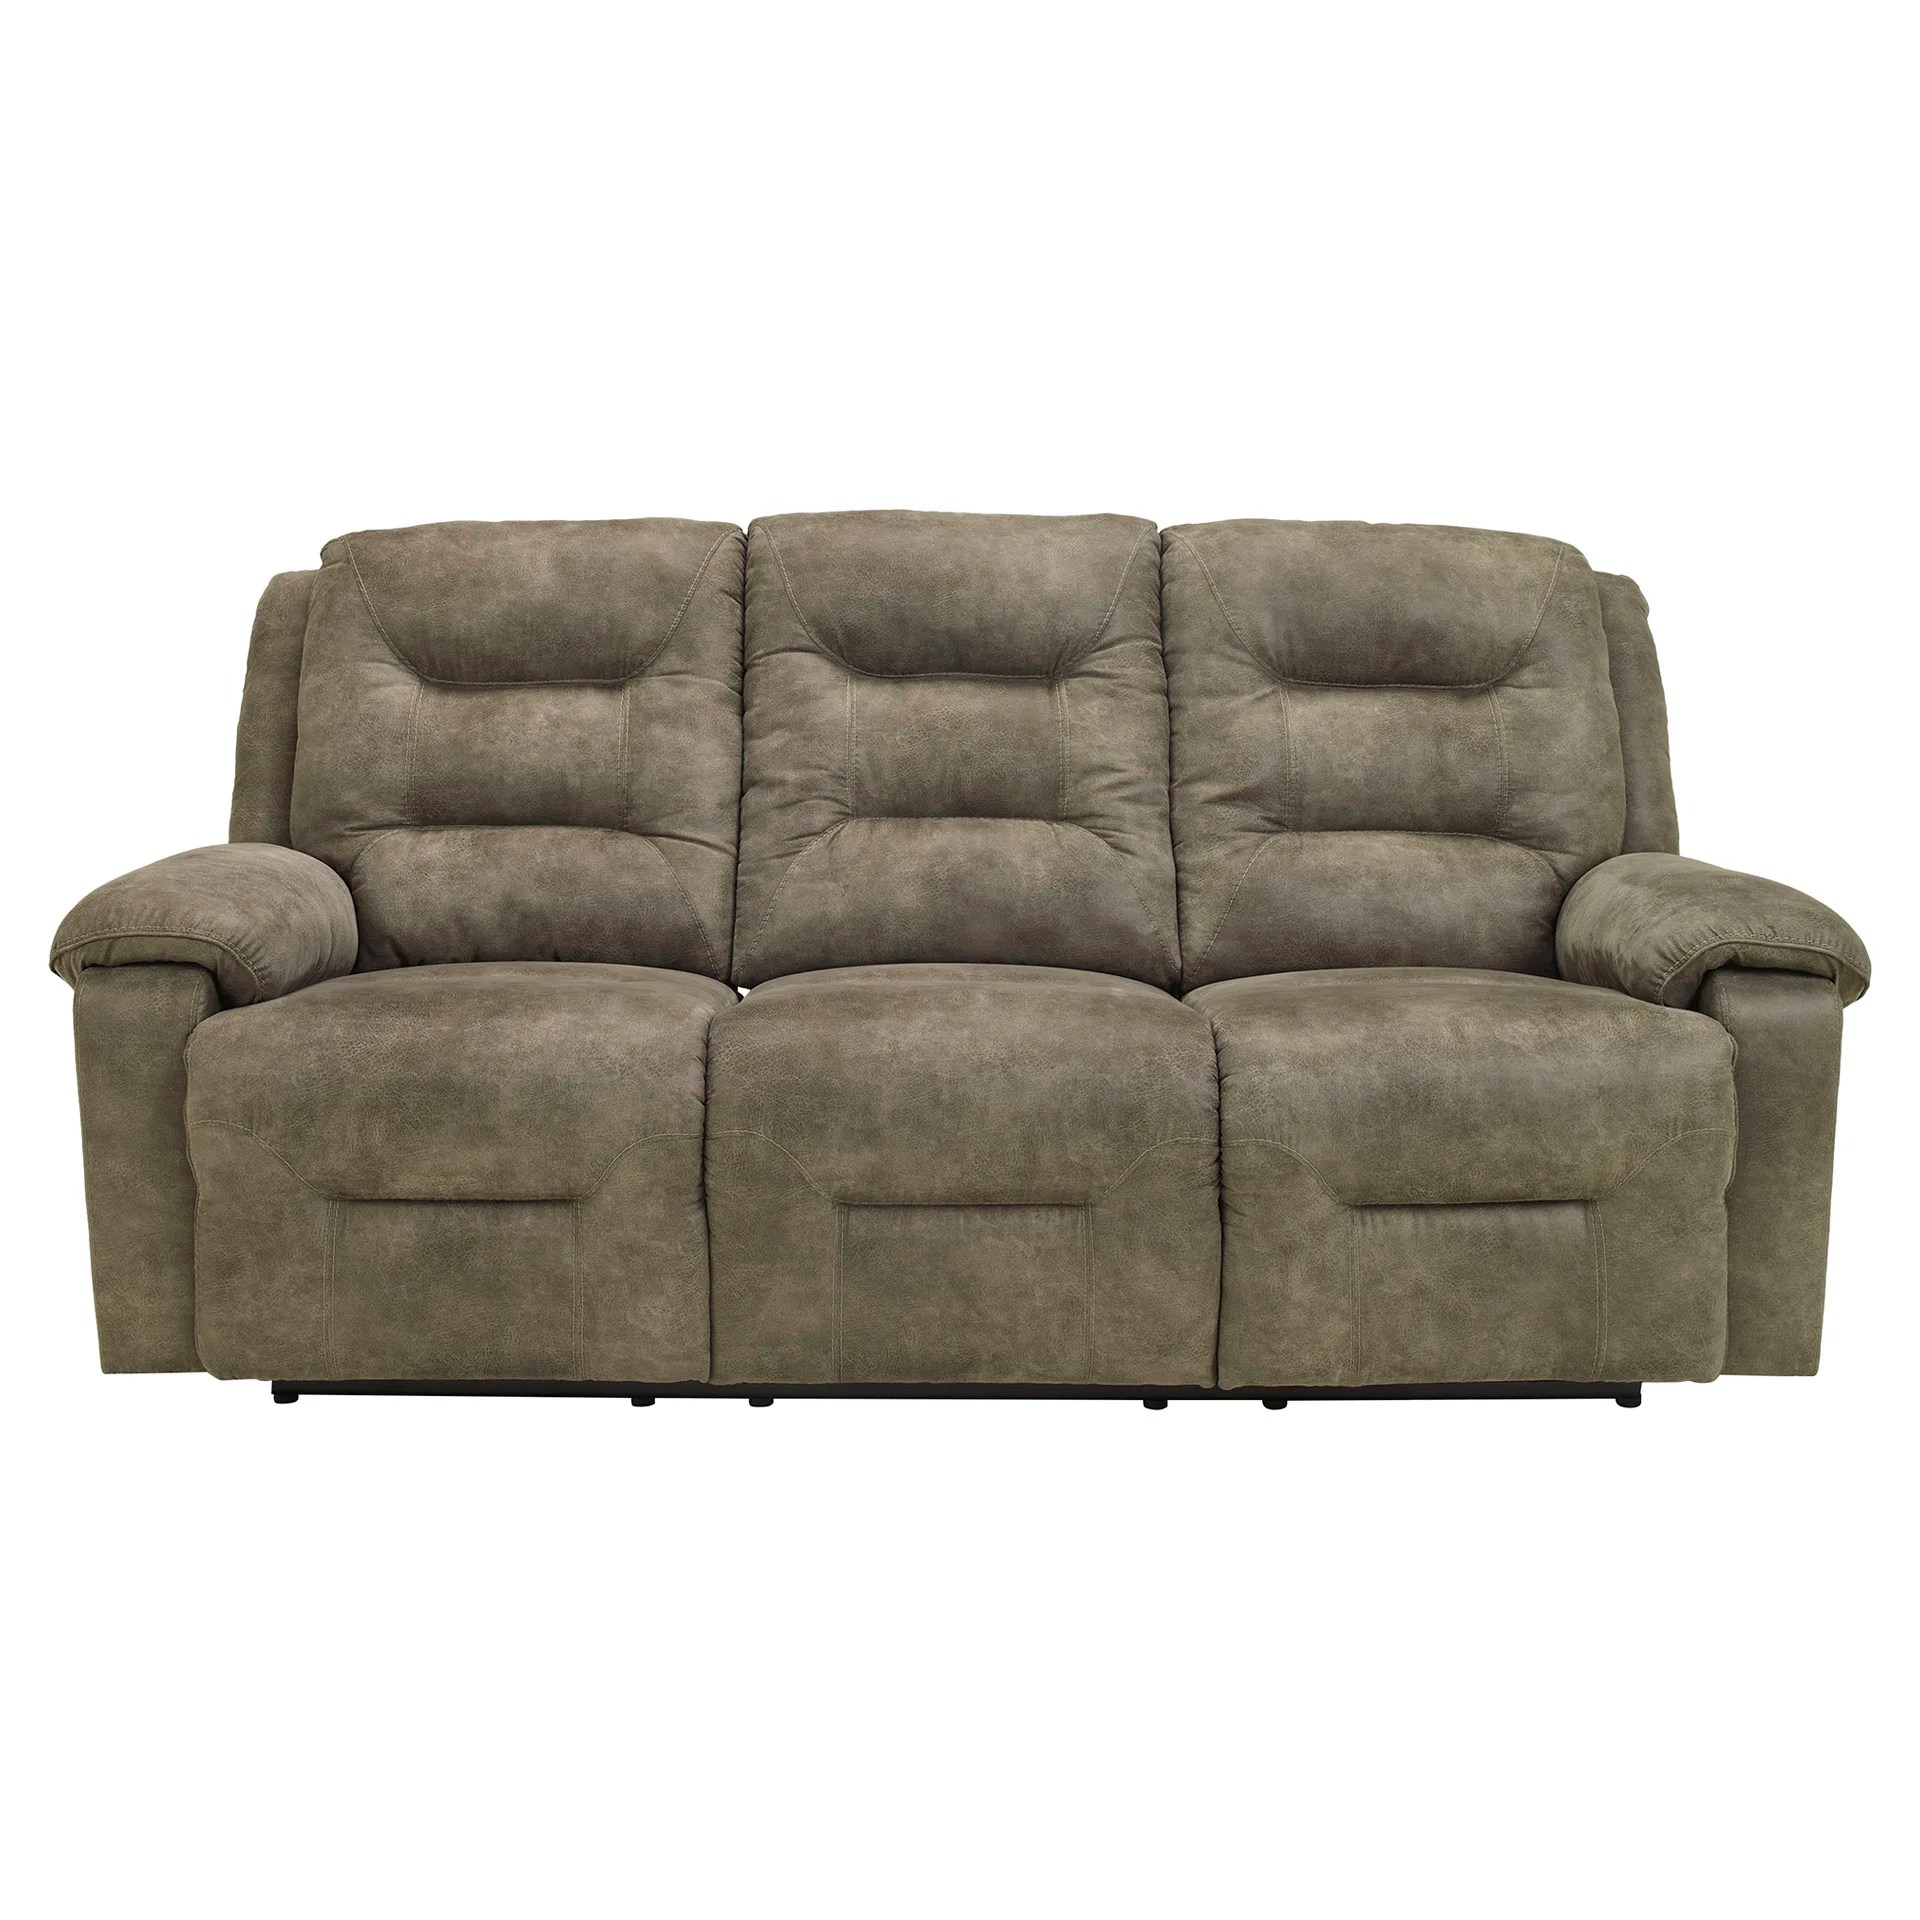 jcpenney sofa reviews black leather living room decor loon peak tressider reclining and wayfair ca